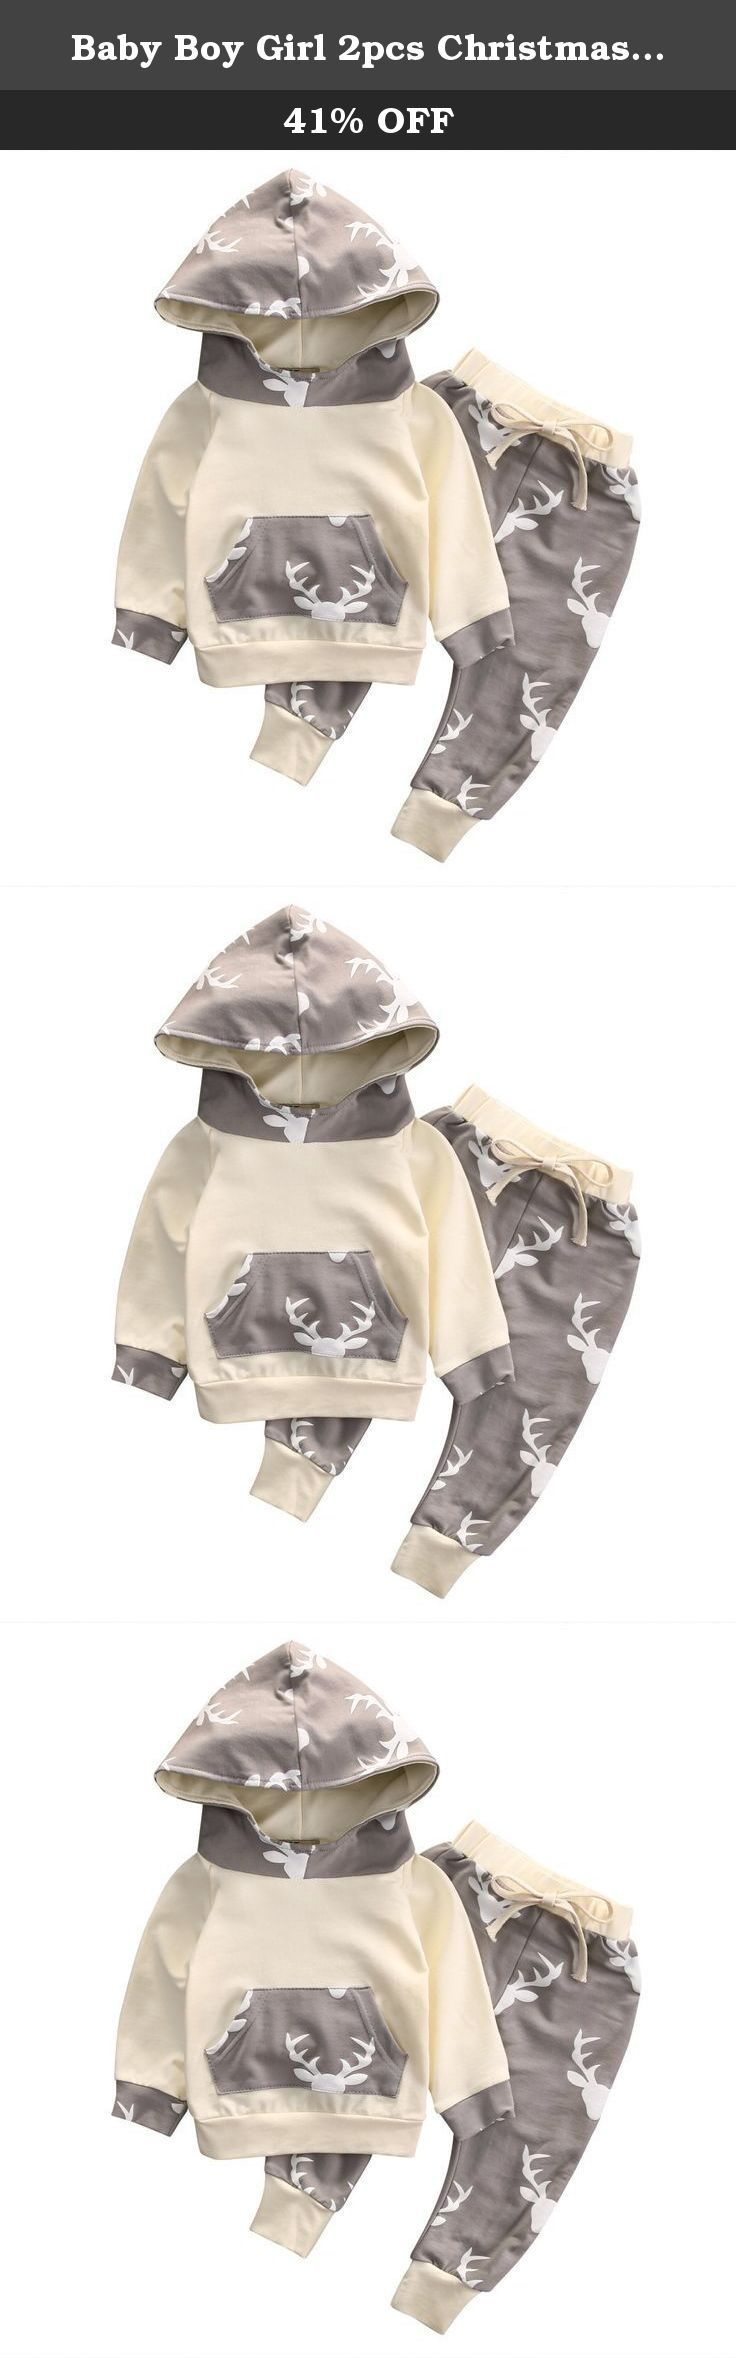 Baby Boy Girl 2pcs Christmas Suit Hoodies Deer Print Long Sleeve Top+Long Pants (6-12months, Beige). There is 2-3% difference according to manual measurement. Please note that slight color difference should be acceptable due to the light and screen. SIZE Chart 0-3months Top Length 31cm Bust 52cm Pants Length 44cm 3-6months Top Length 33cm Bust 55cm Pants Length 47cm 6-12months Top Length 35cm Bust 57cm Pants Length 50cm 12-18months Top Length 37cm Bust 60cm Pants Length 53cm .